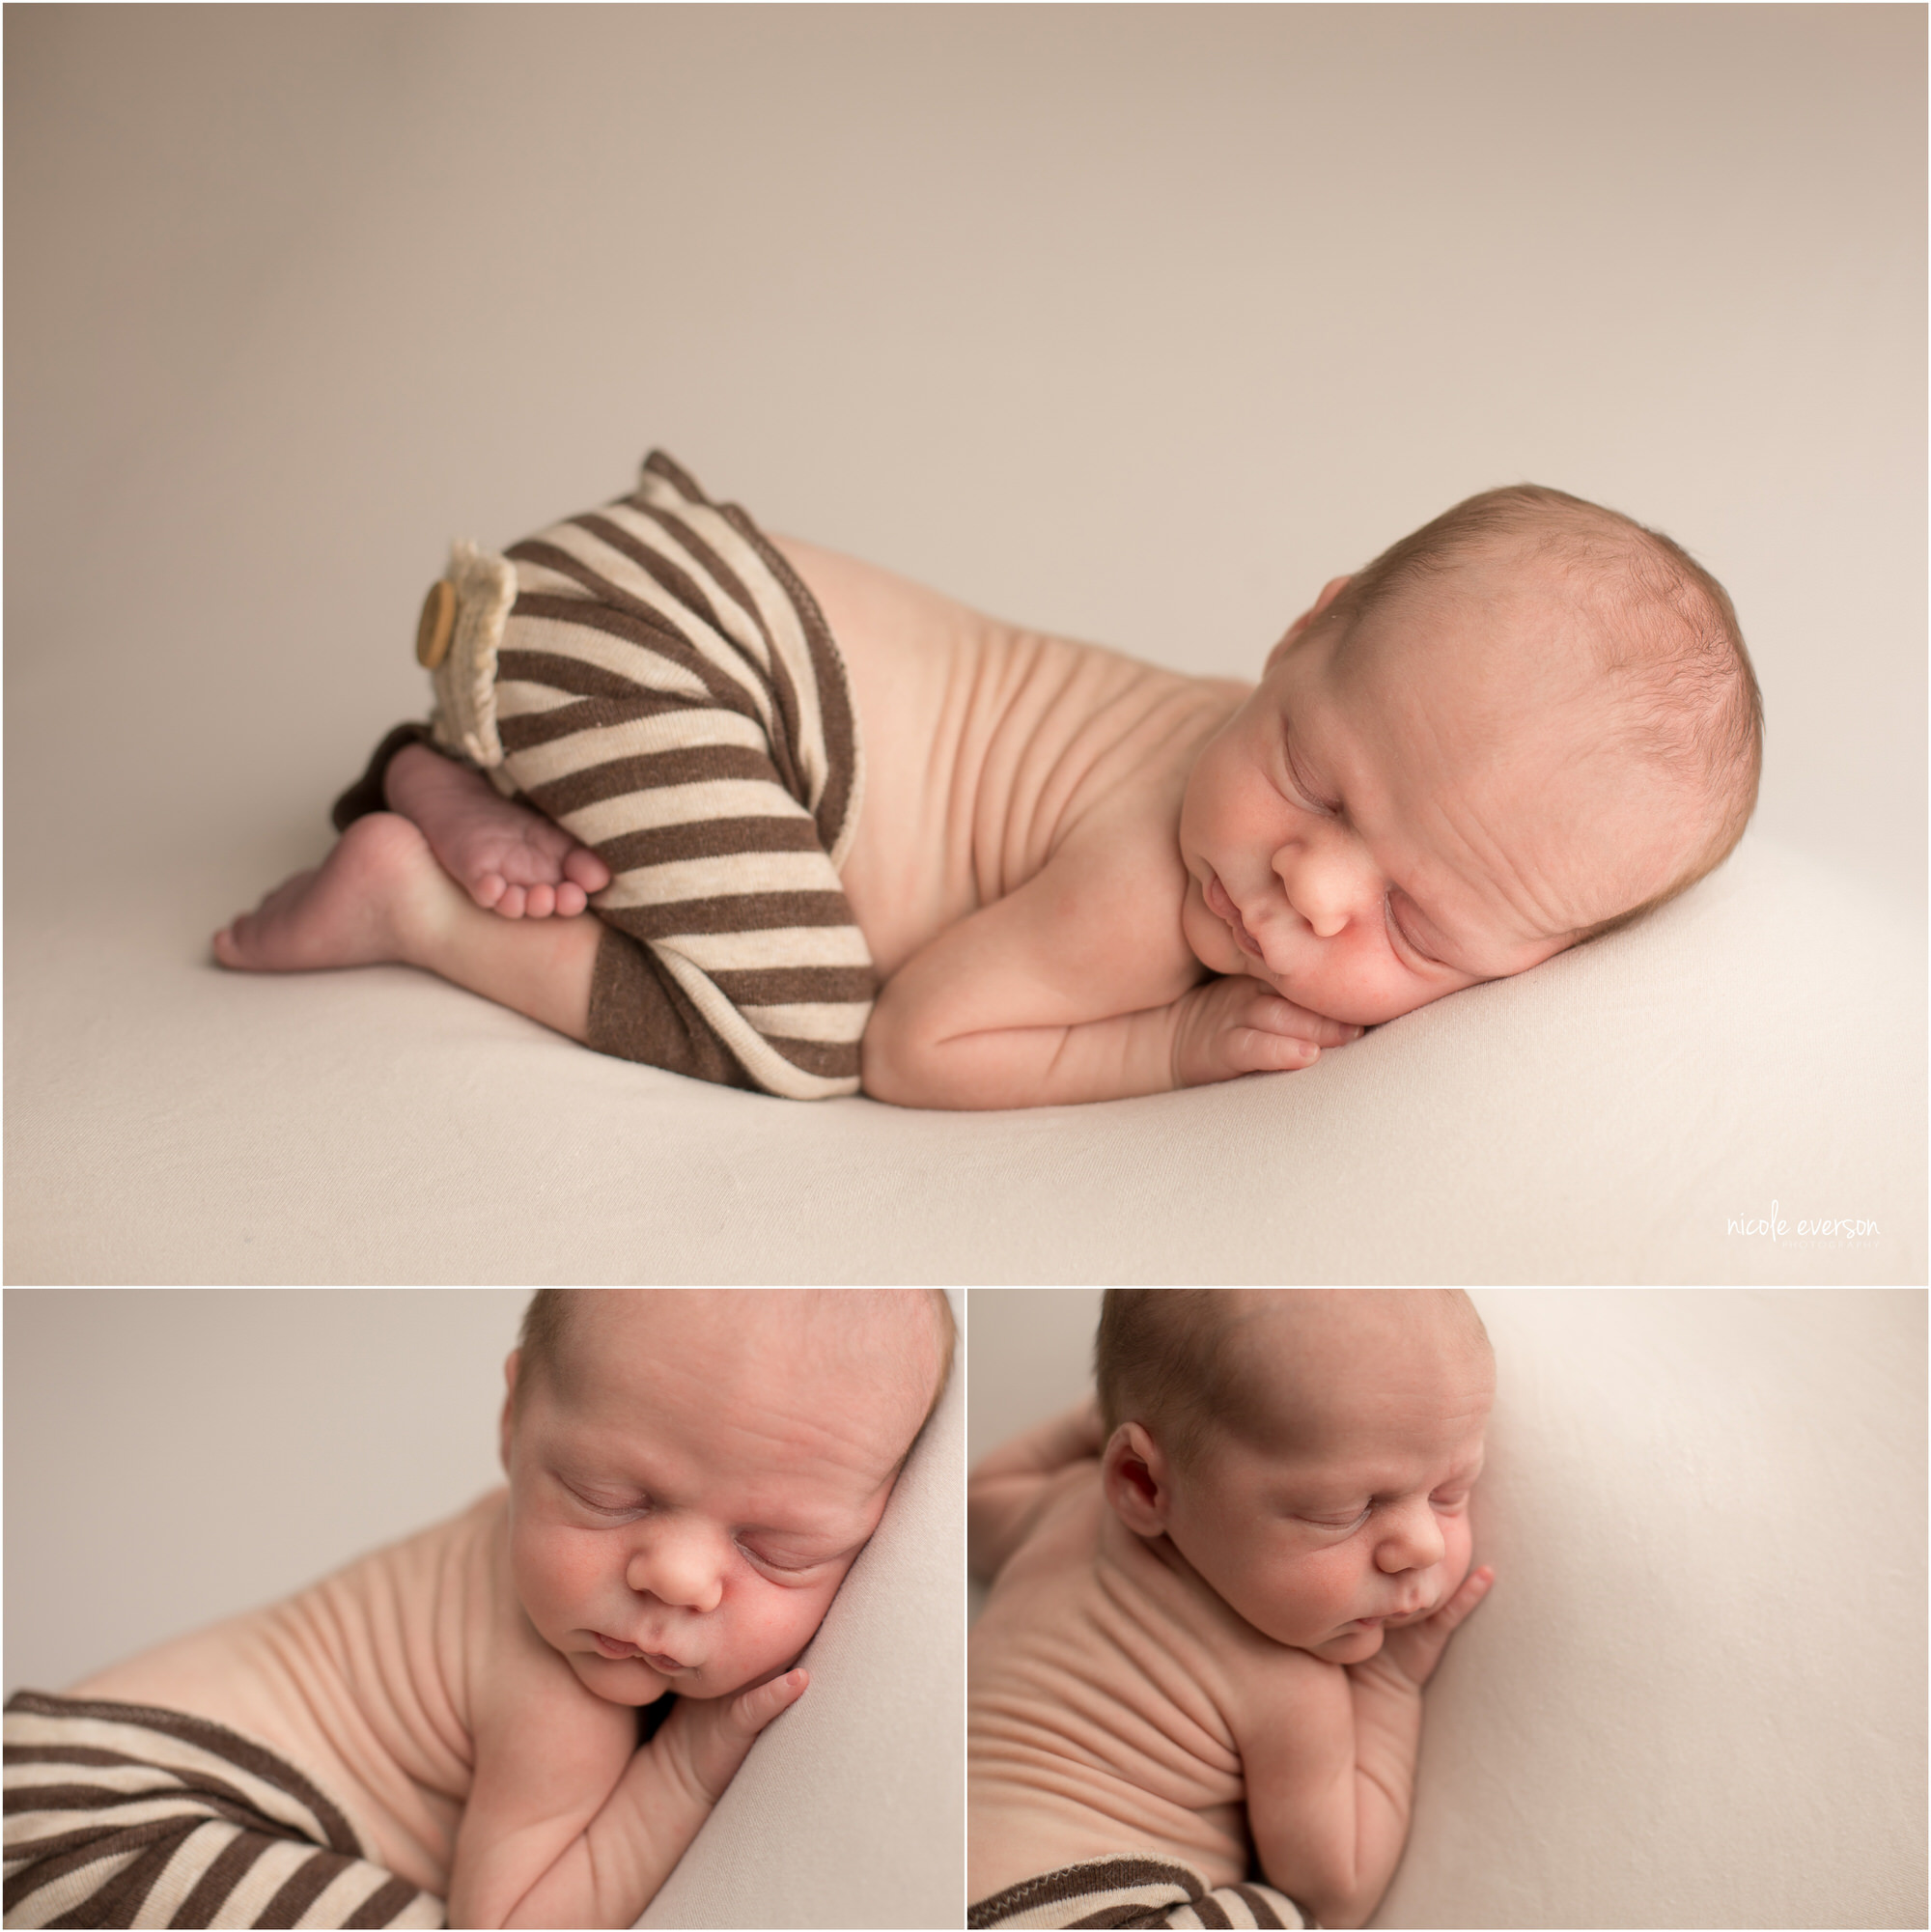 Newborn baby boy wearing brown and cream striped, laying on a soft white backdrop at Nicole Everson Photography.